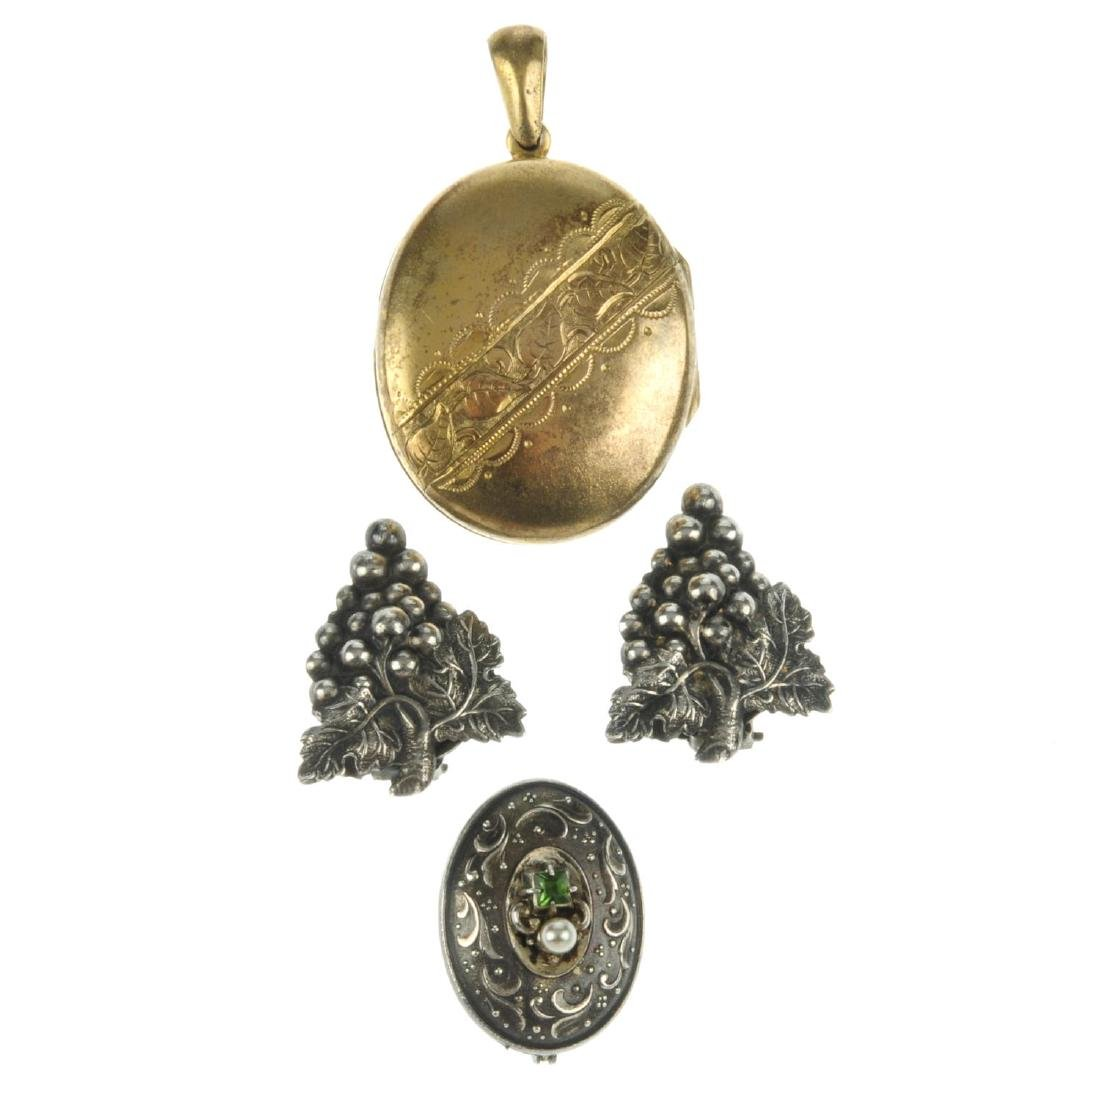 Six items of silver and white metal jewellery, to